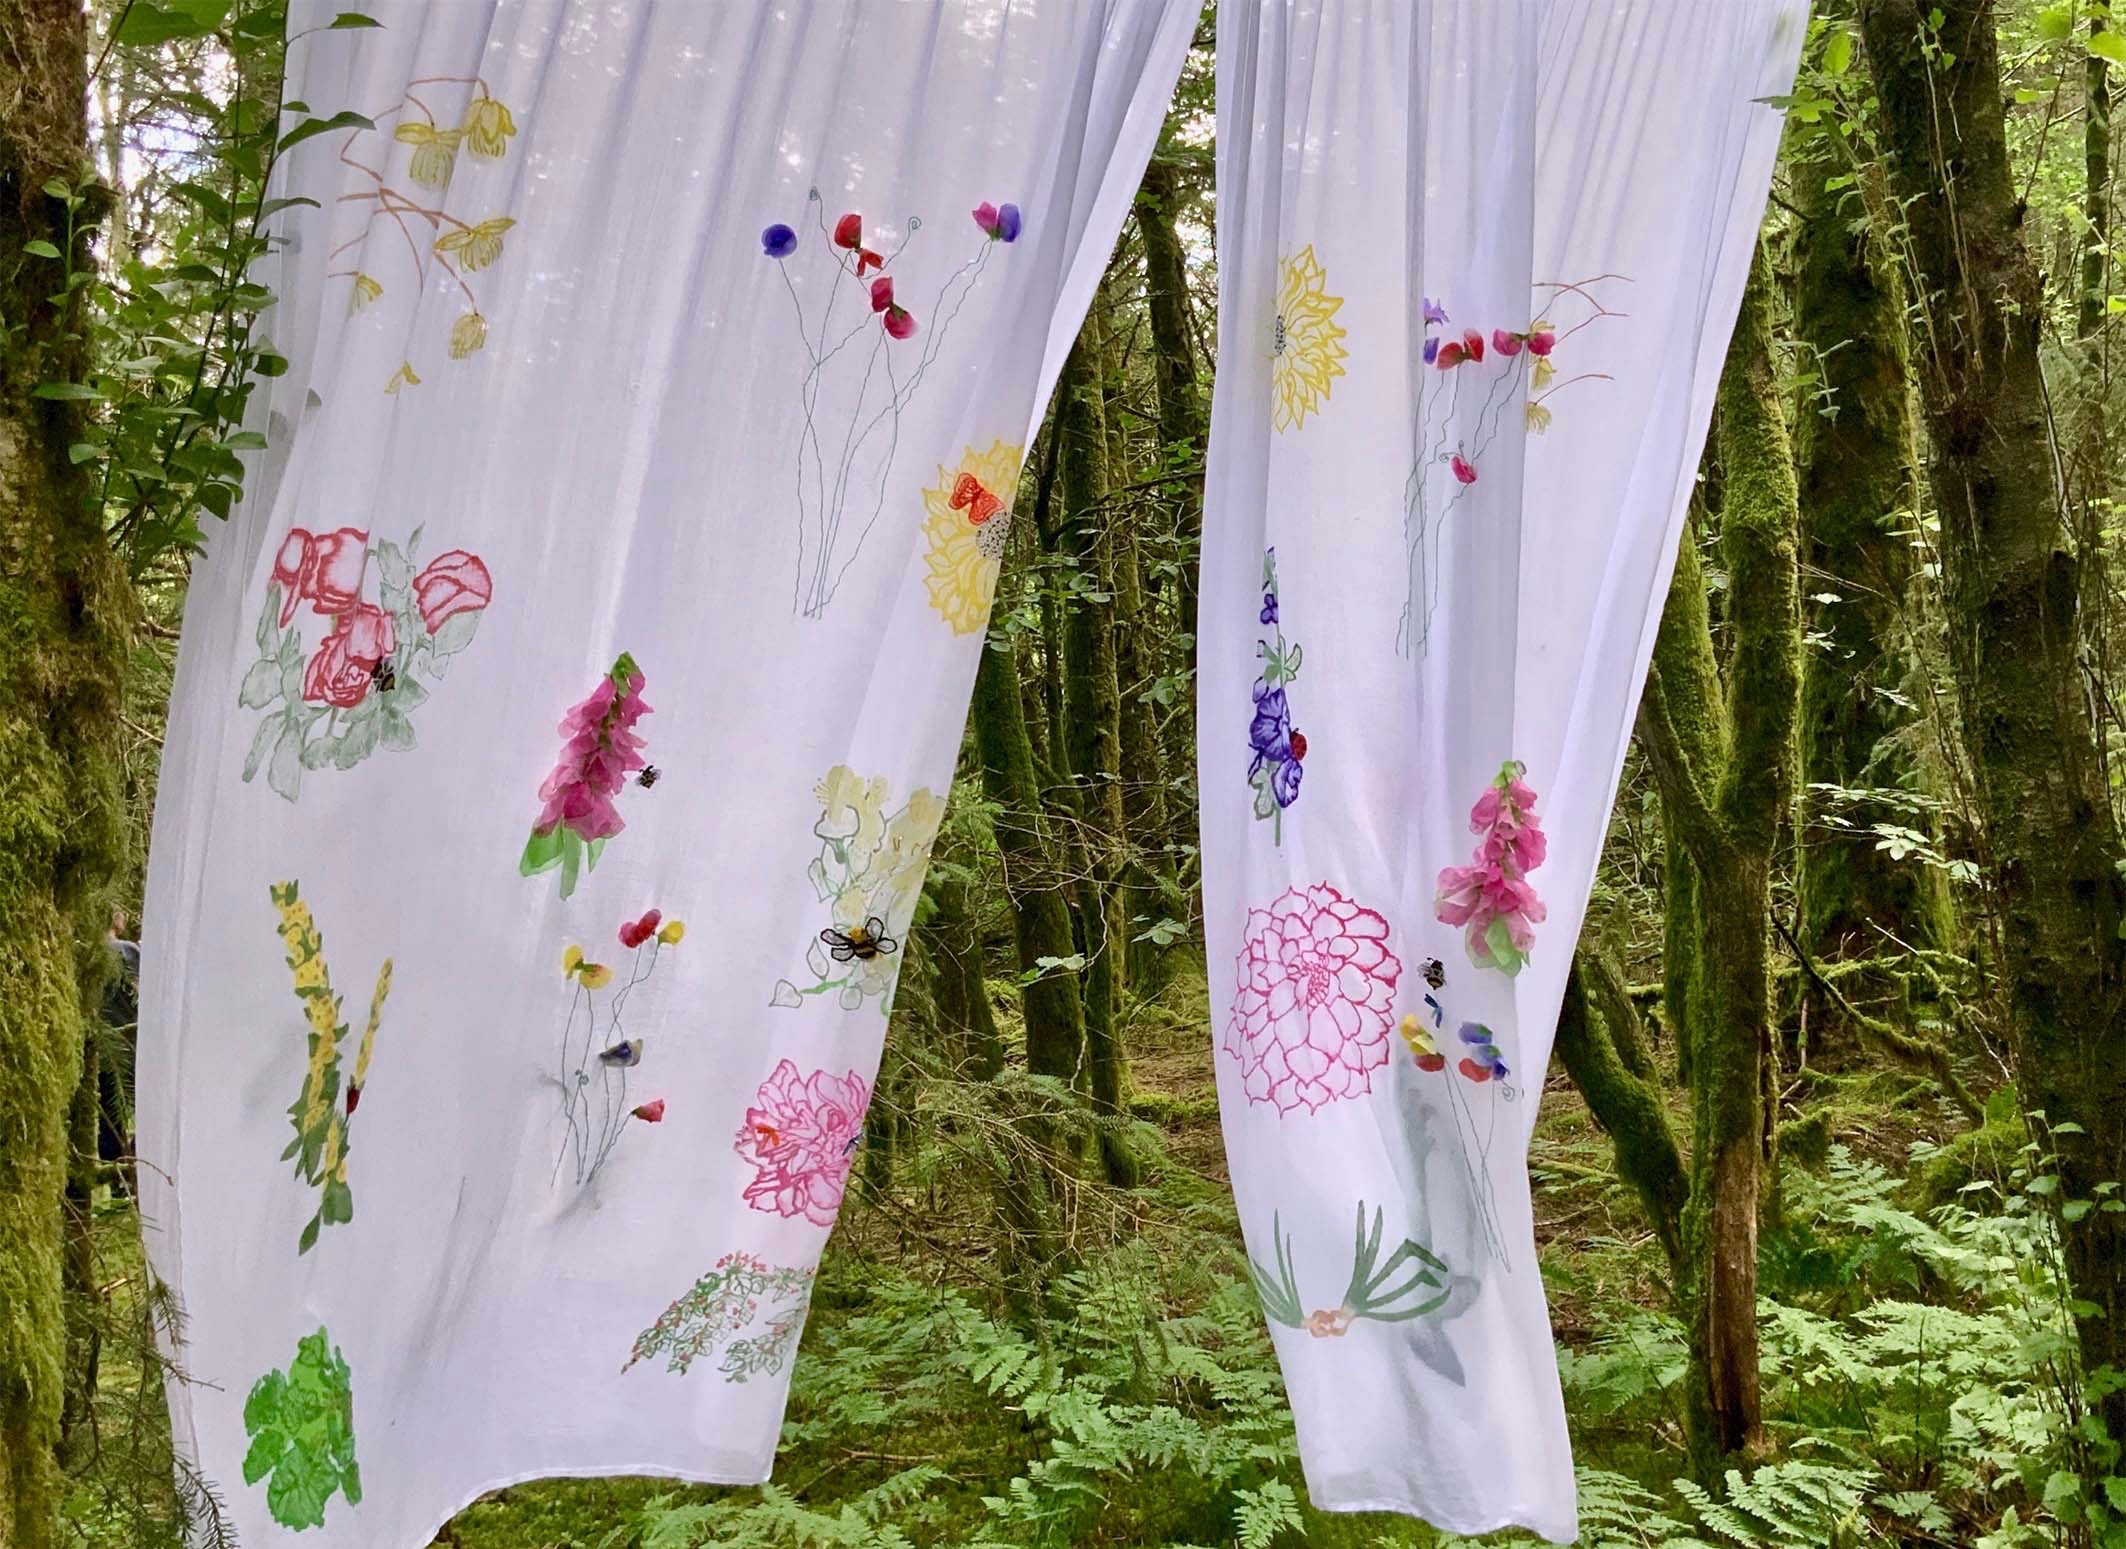 Whimsical Cottage Garden Drapes photographed in a natural environment